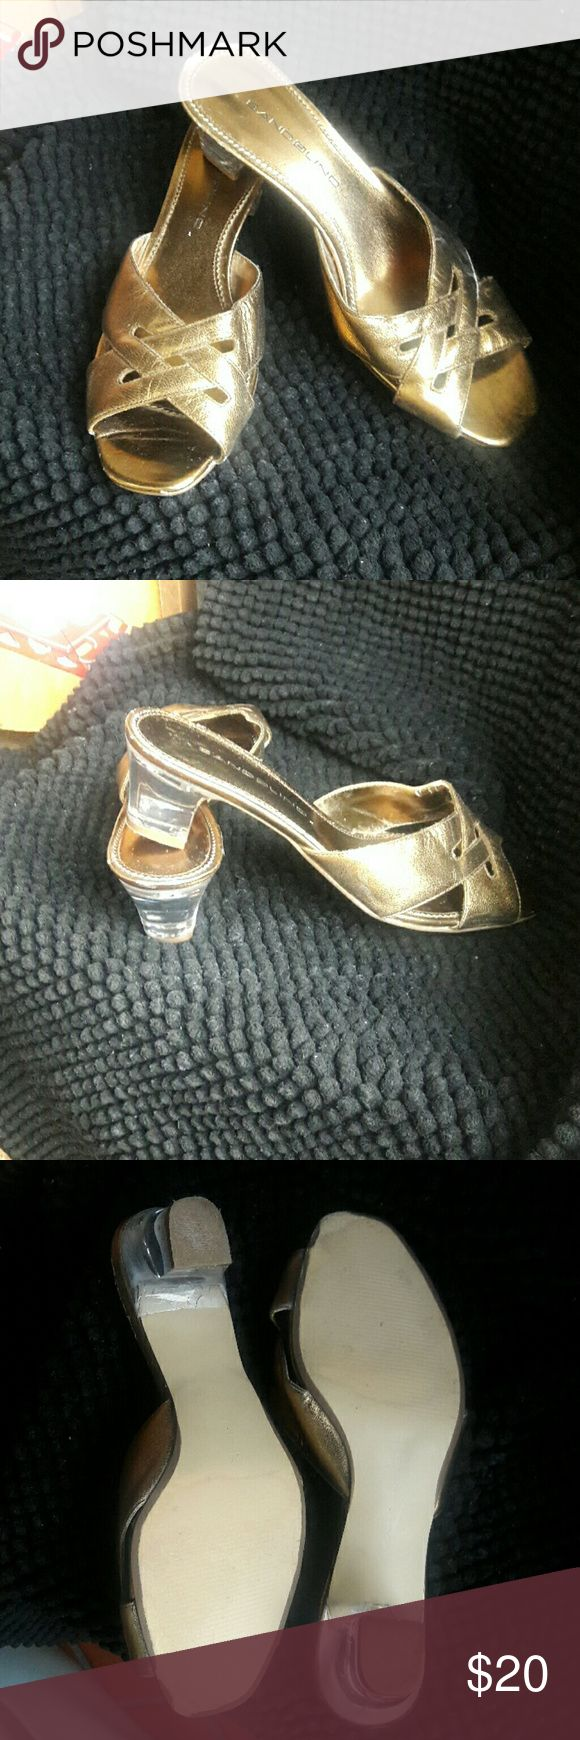 """Bandolino Gold Glass Heel 2""""Heel Mules Sandals Brand Bandolino  Style #0108 DBBSafe Size 6M Gold Metallic  Large Weave Cross Strap with 2""""heel in Glass (Clear). Leather Upper Balance Manmade Good Condition no noticeable outer flaws inside has slight cracking and bottom soles do show wear.  Could dance all night in these shoes. Bundles available with discounts Bandolino Shoes Mules & Clogs"""